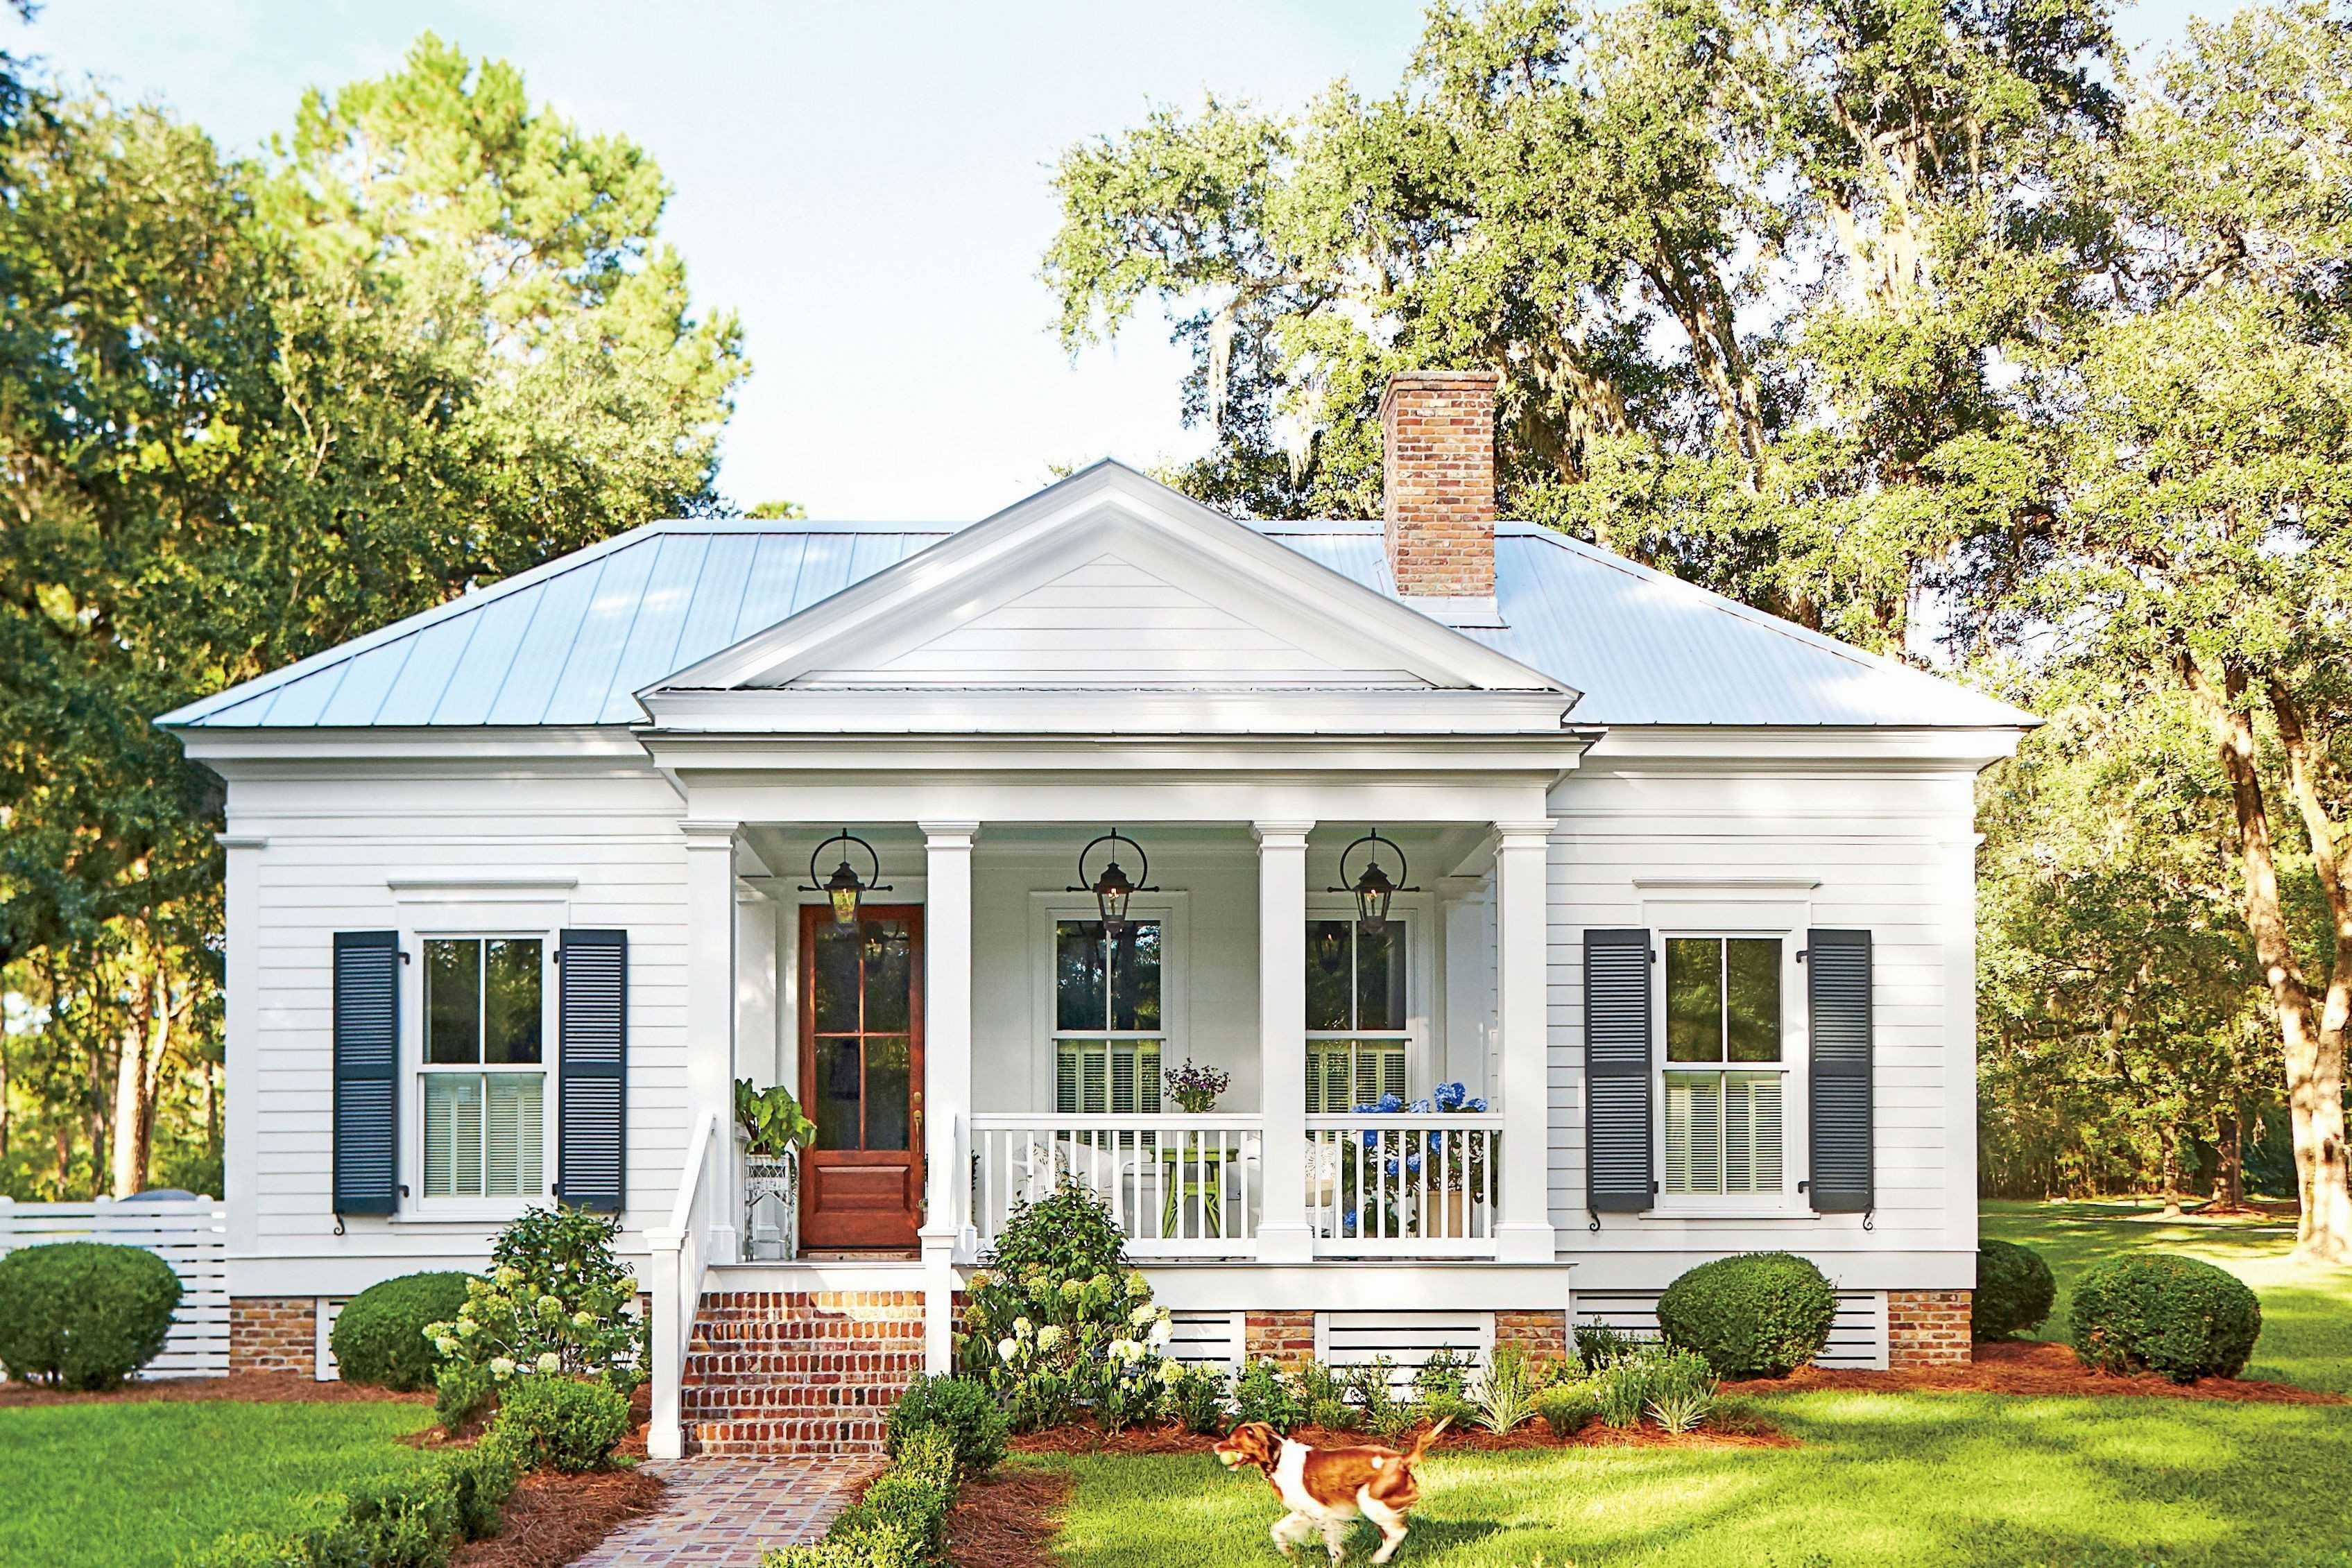 Small Old Farmhouse With Wrap Around Porch Fresh Small Old Farmhouse With Wrap Around Porch Houses Wit Cottage Exterior Small Cottage Homes Florida Cottage